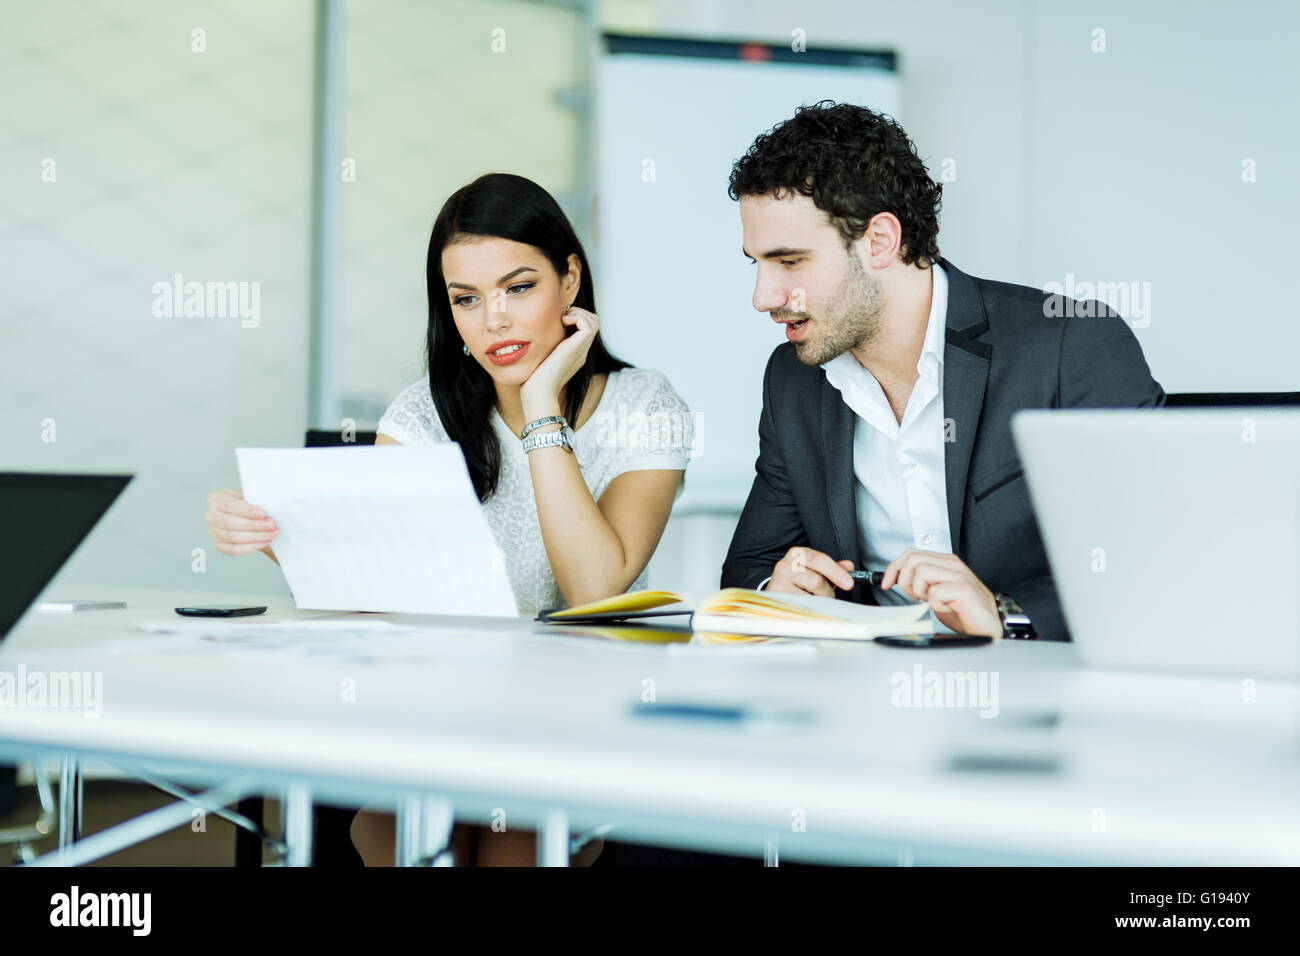 Young, successful businesswoman and a businessman looking at a paper while sitting at a office desk - Stock Image